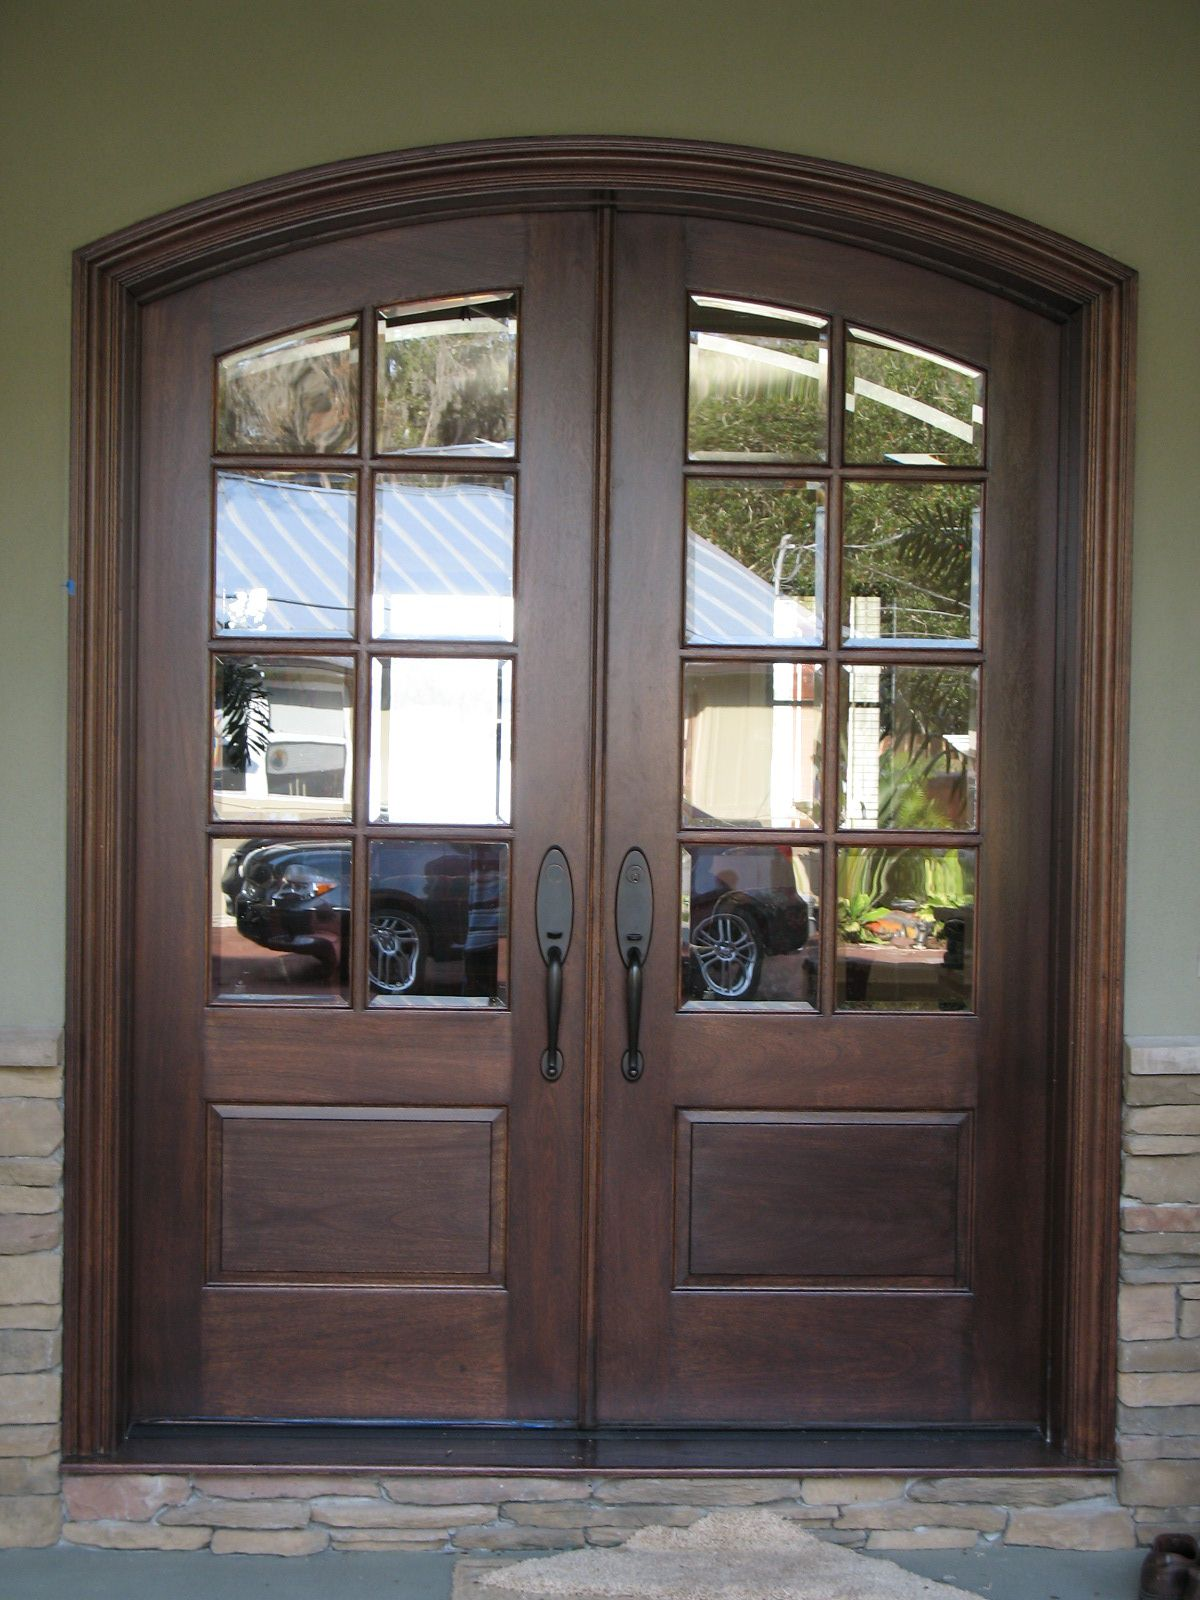 Welcome To Frenchdoordirect Com Gallery Browse Thru Our Unique Wrought Iron Door French Rustic Wood And Leaded Glass